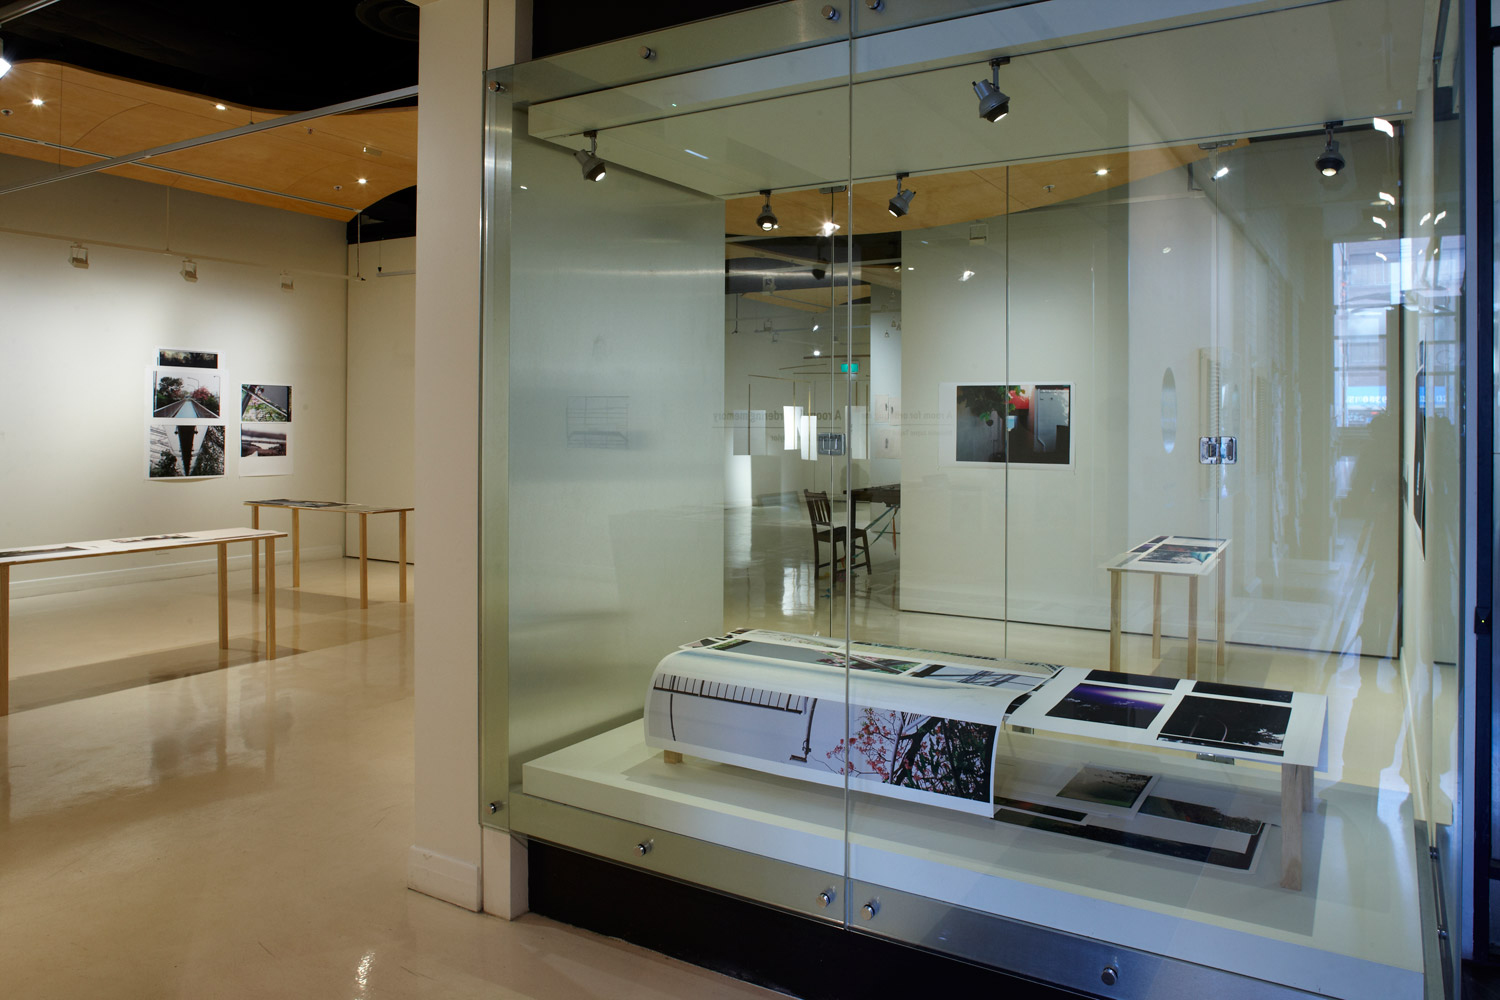 Display Case - 'Too Dark To Deal WIth Now' - Installation View. 2012. Counihan Gallery.